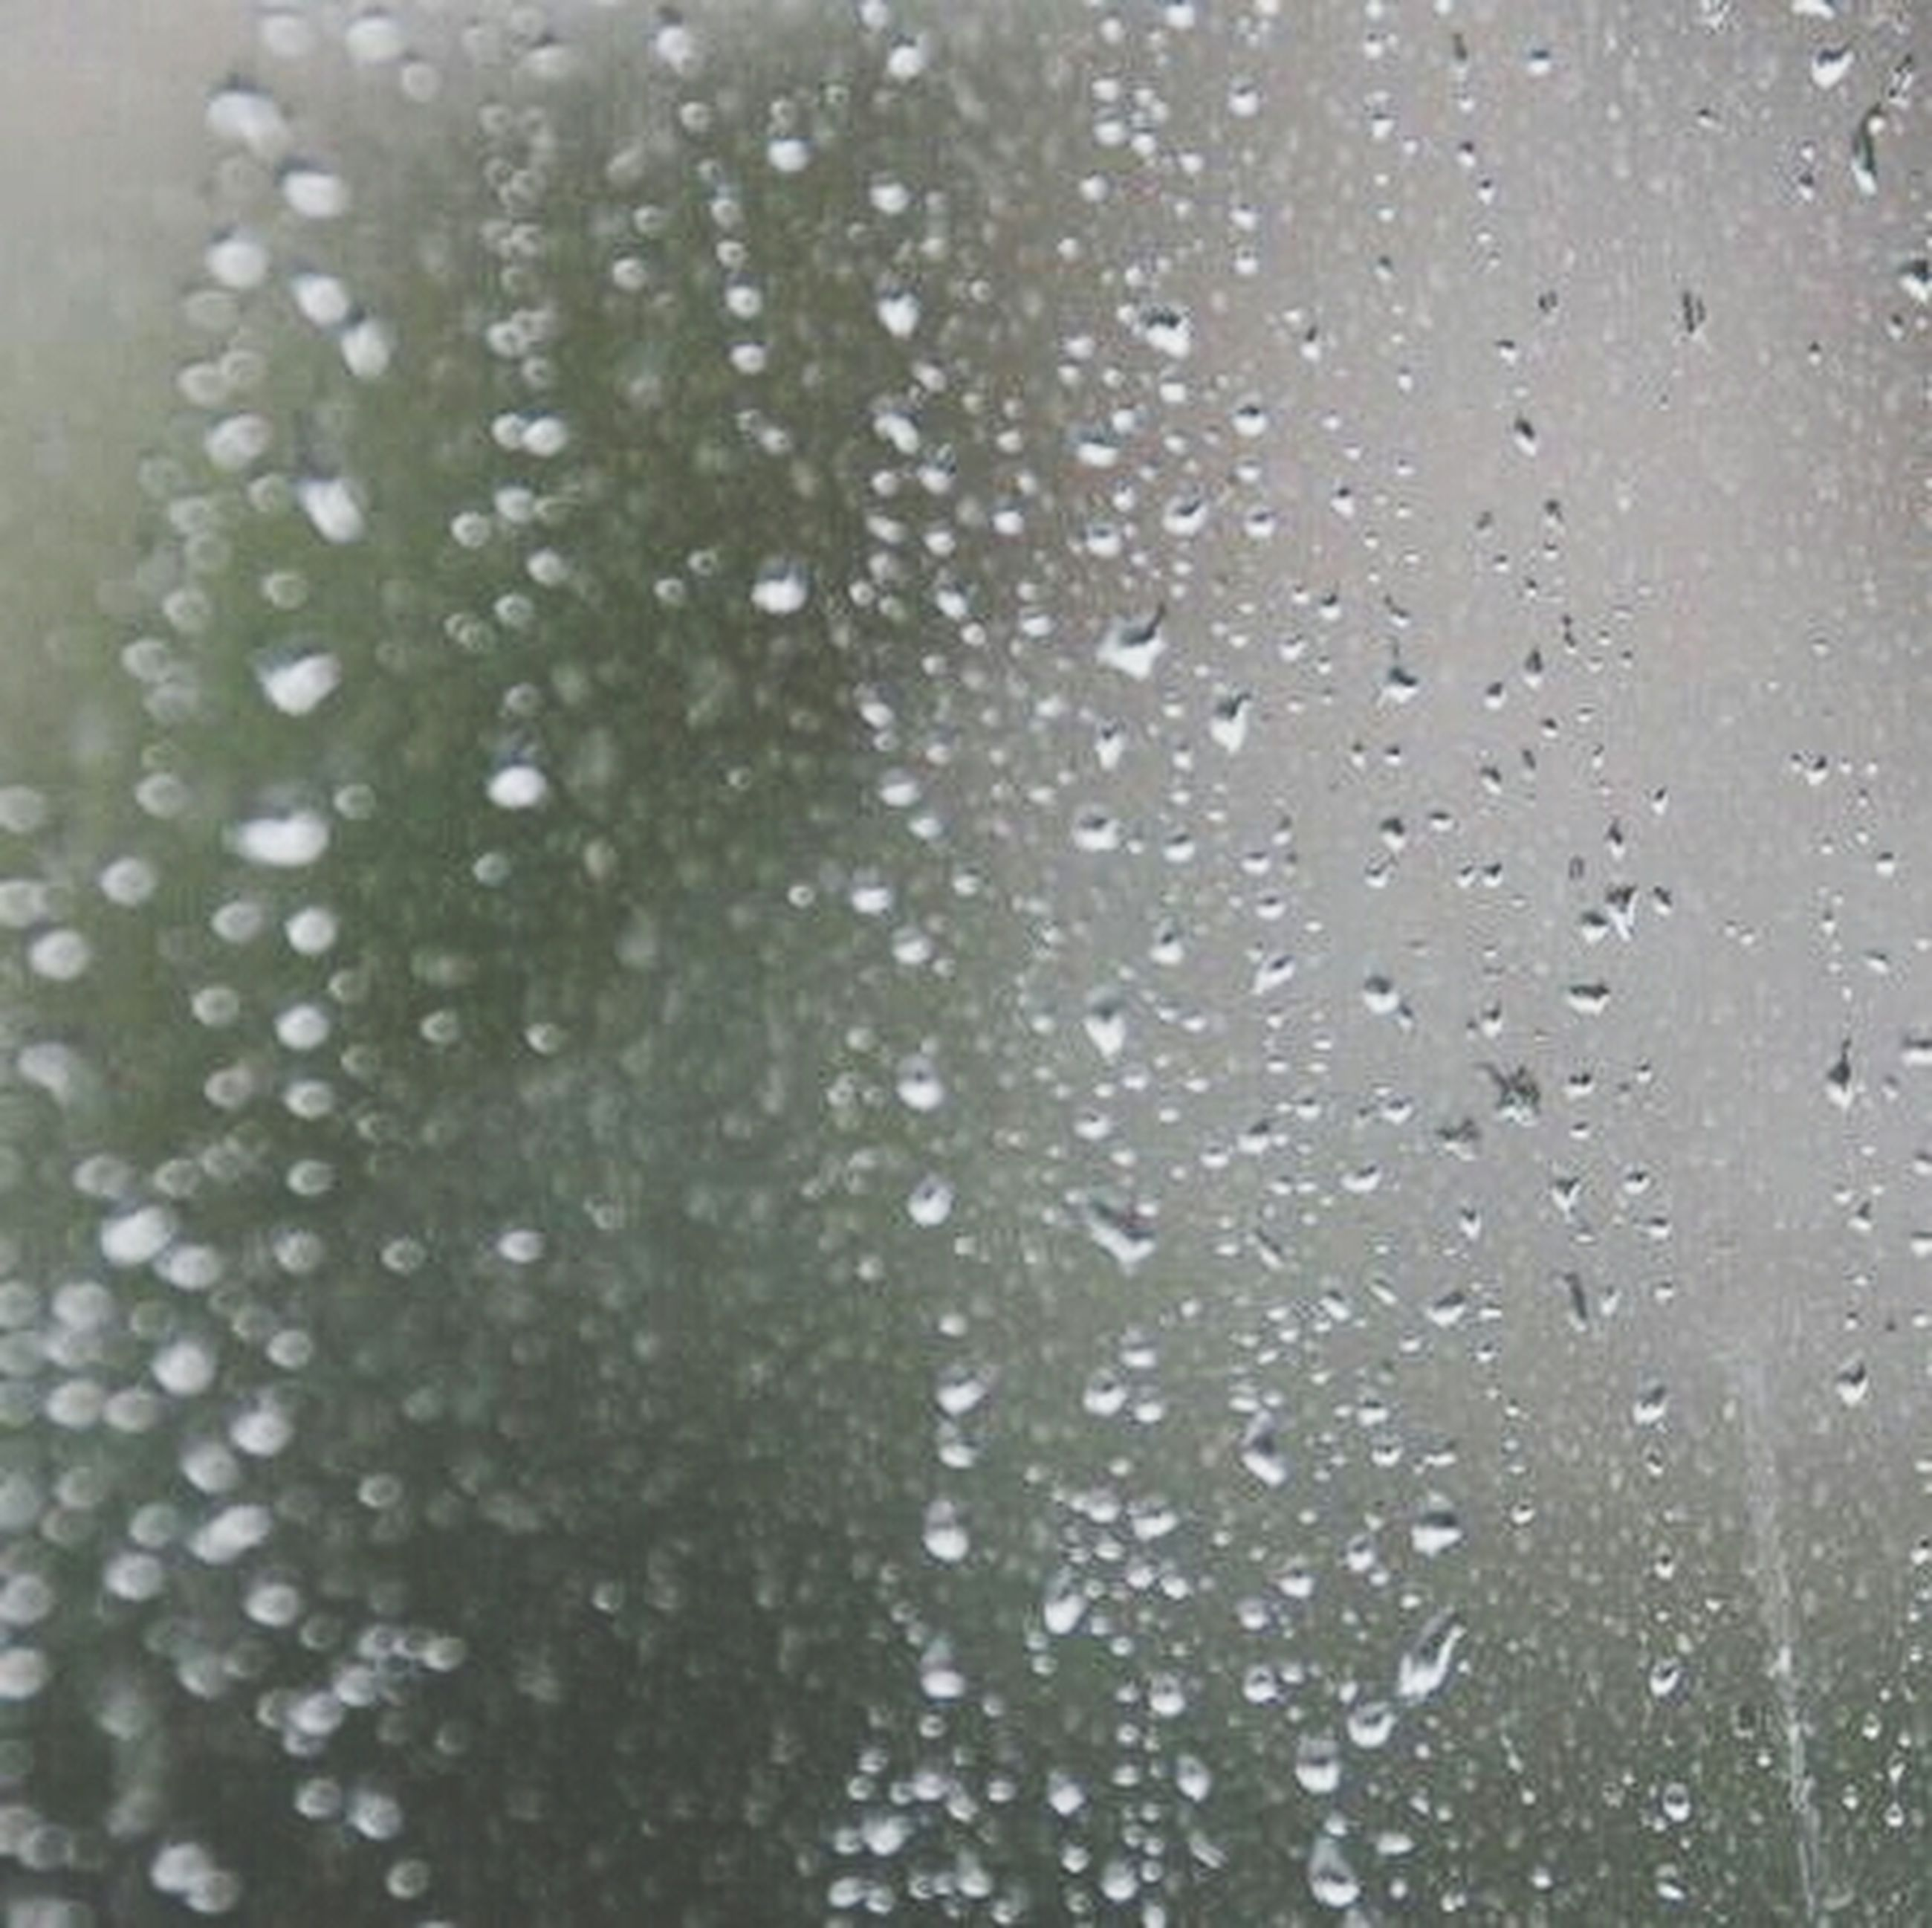 drop, wet, window, water, rain, glass - material, transparent, full frame, indoors, backgrounds, raindrop, weather, season, close-up, glass, focus on foreground, water drop, droplet, monsoon, no people